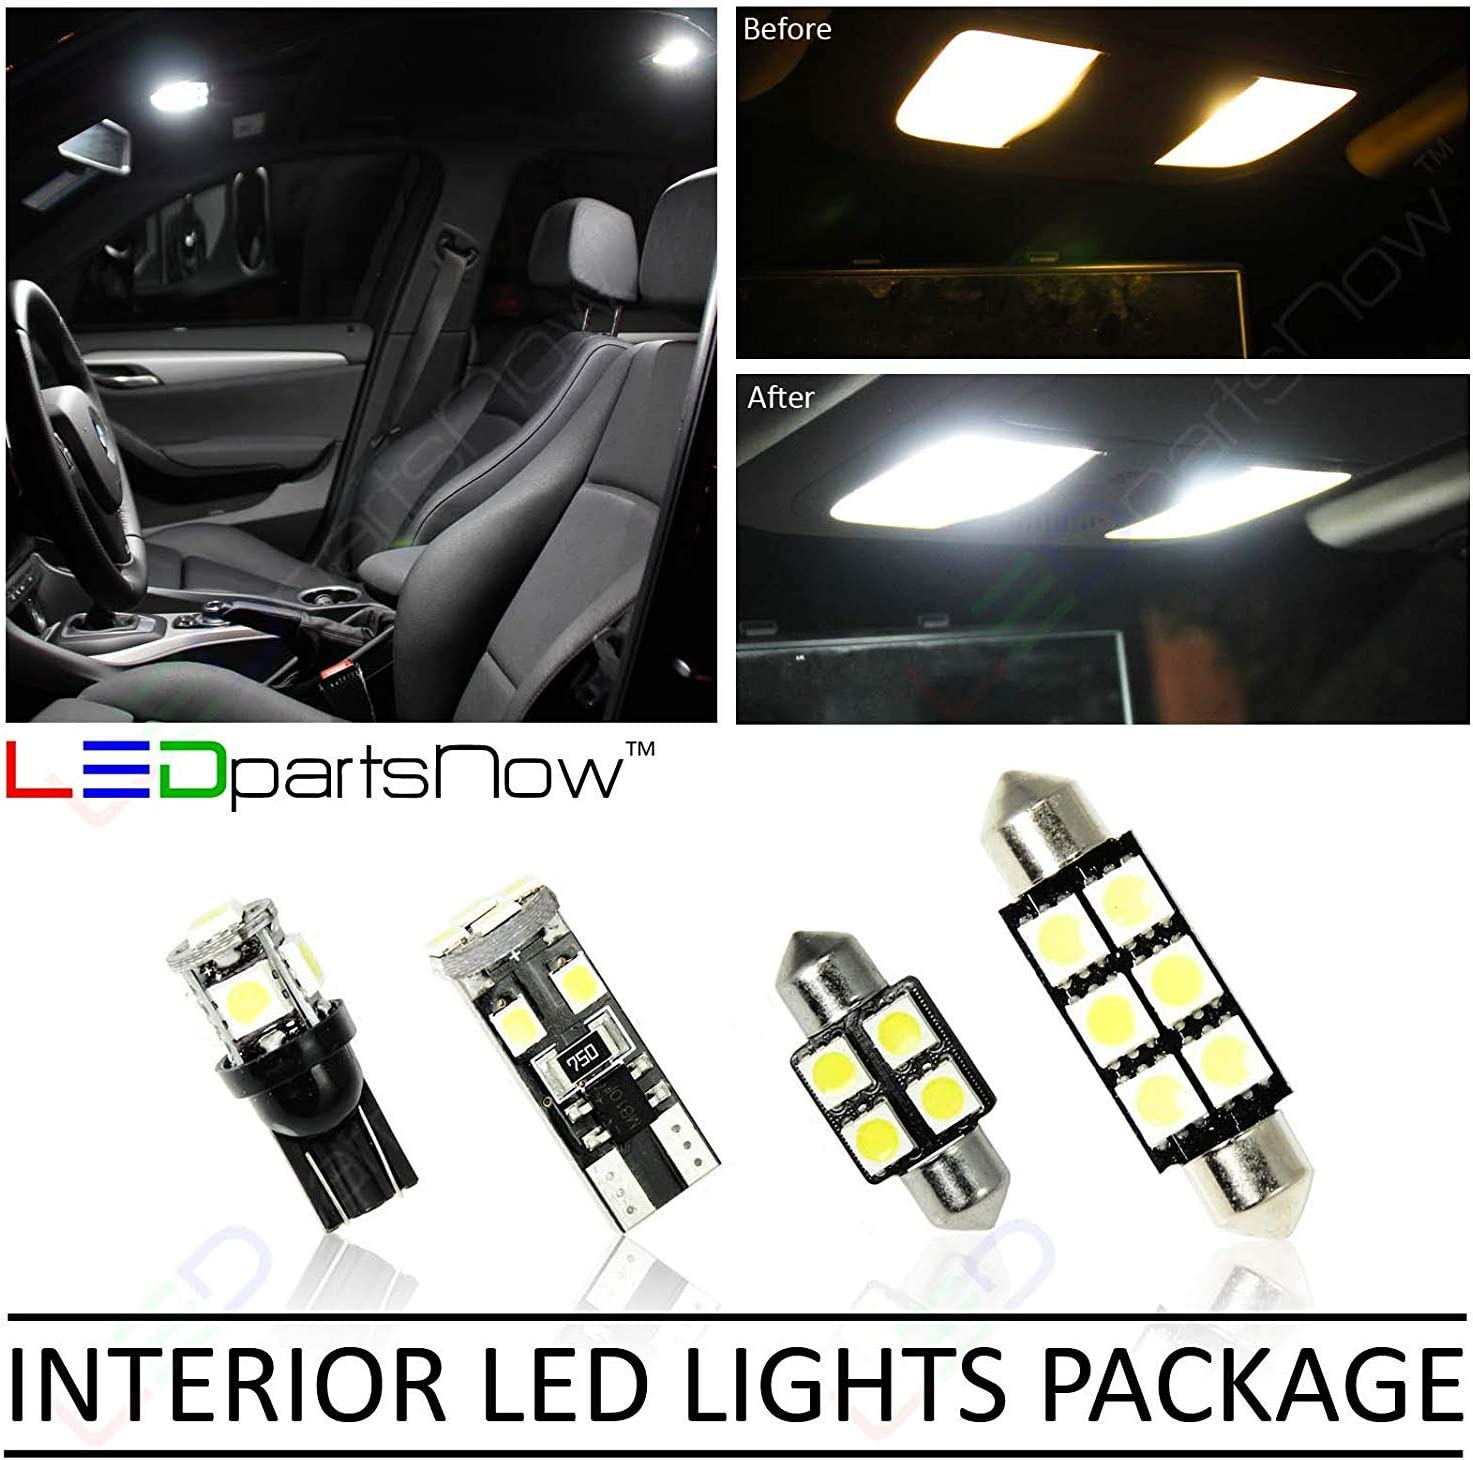 Interior Light LED replacement kit for BMW E46 3 SERIES 16 pcs COOL WHITE 6000K